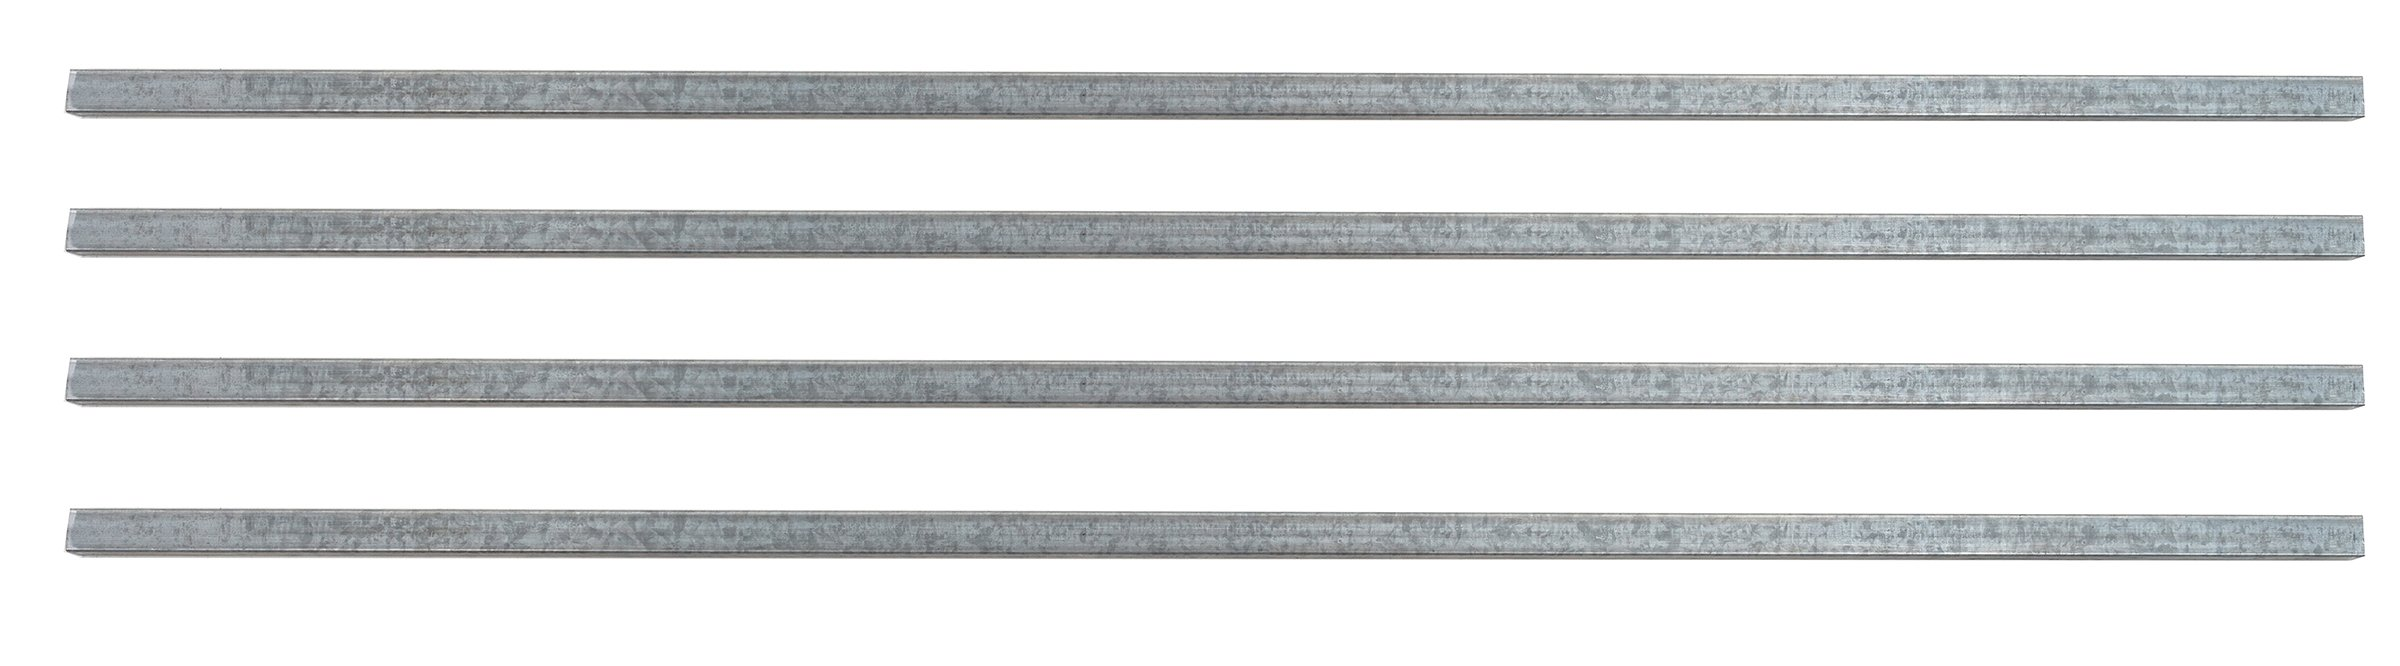 Adjust-A-Gate 4 Rail Ranch Fence Extension Kit (For 8ft. Wide Openings)